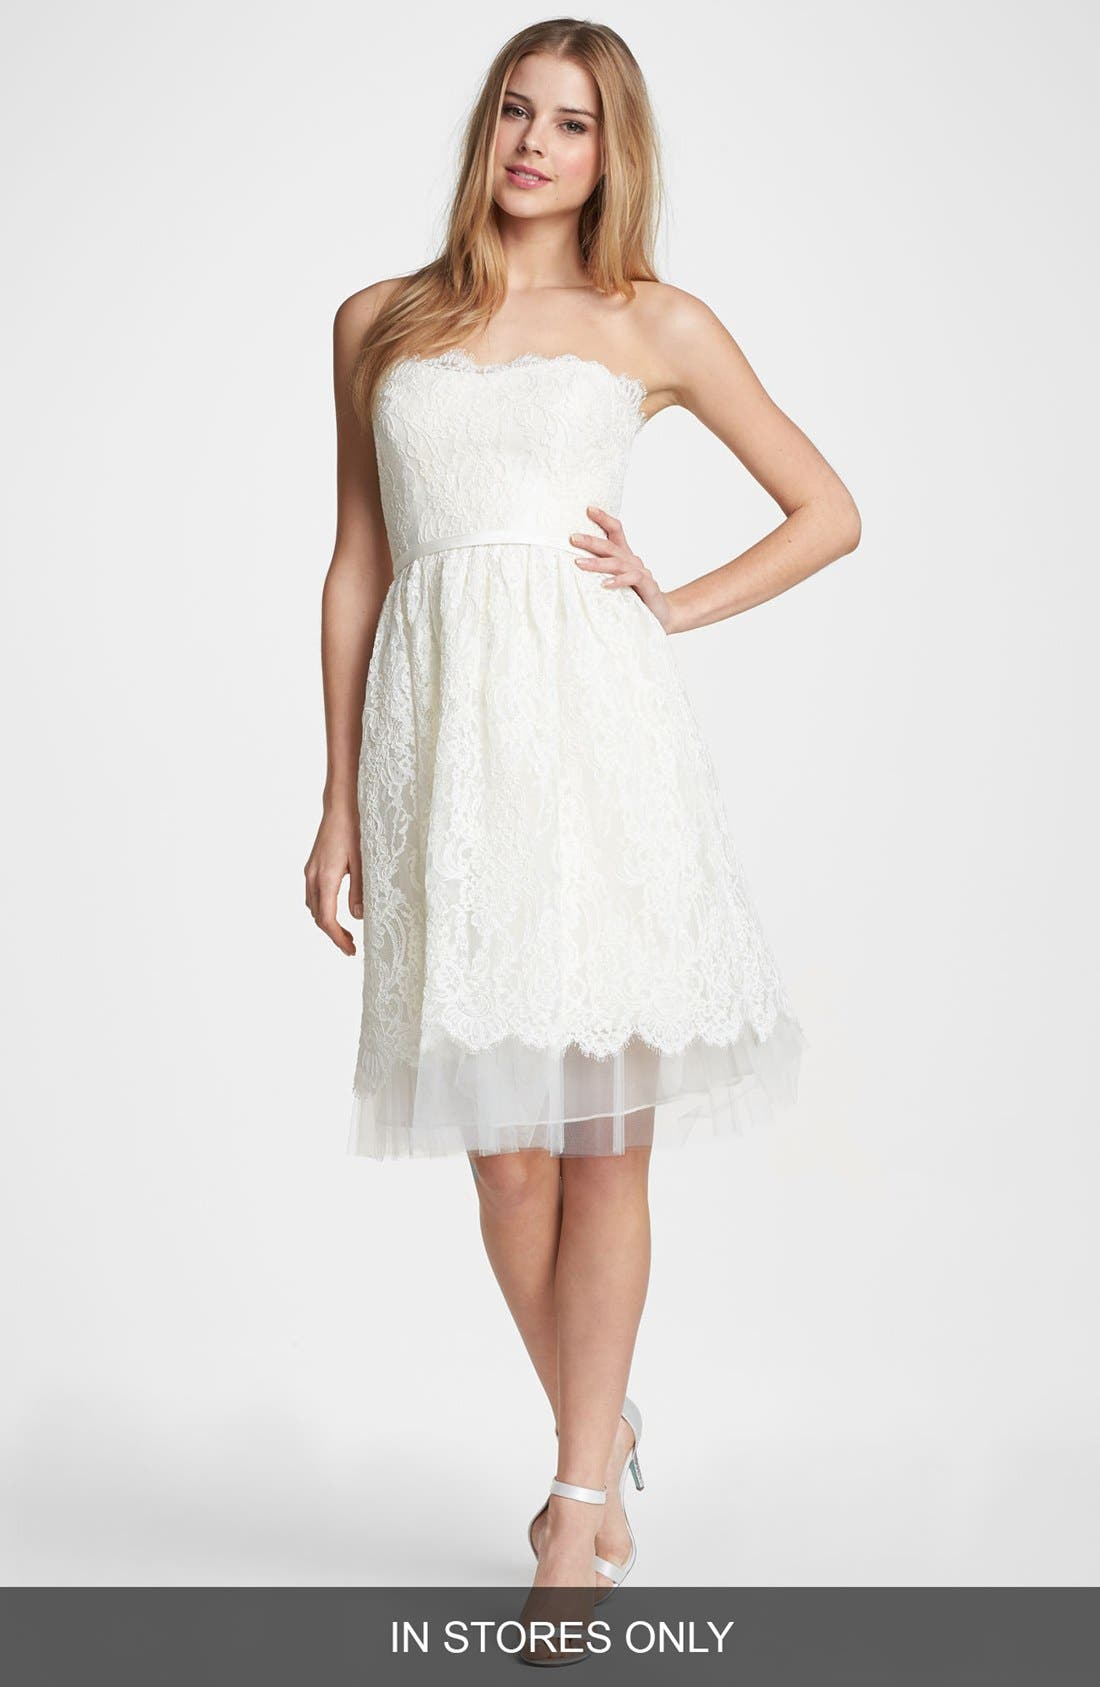 Main Image - Jenny Yoo 'Libby' Lace Fit & Flare Dress (In Stores Only)